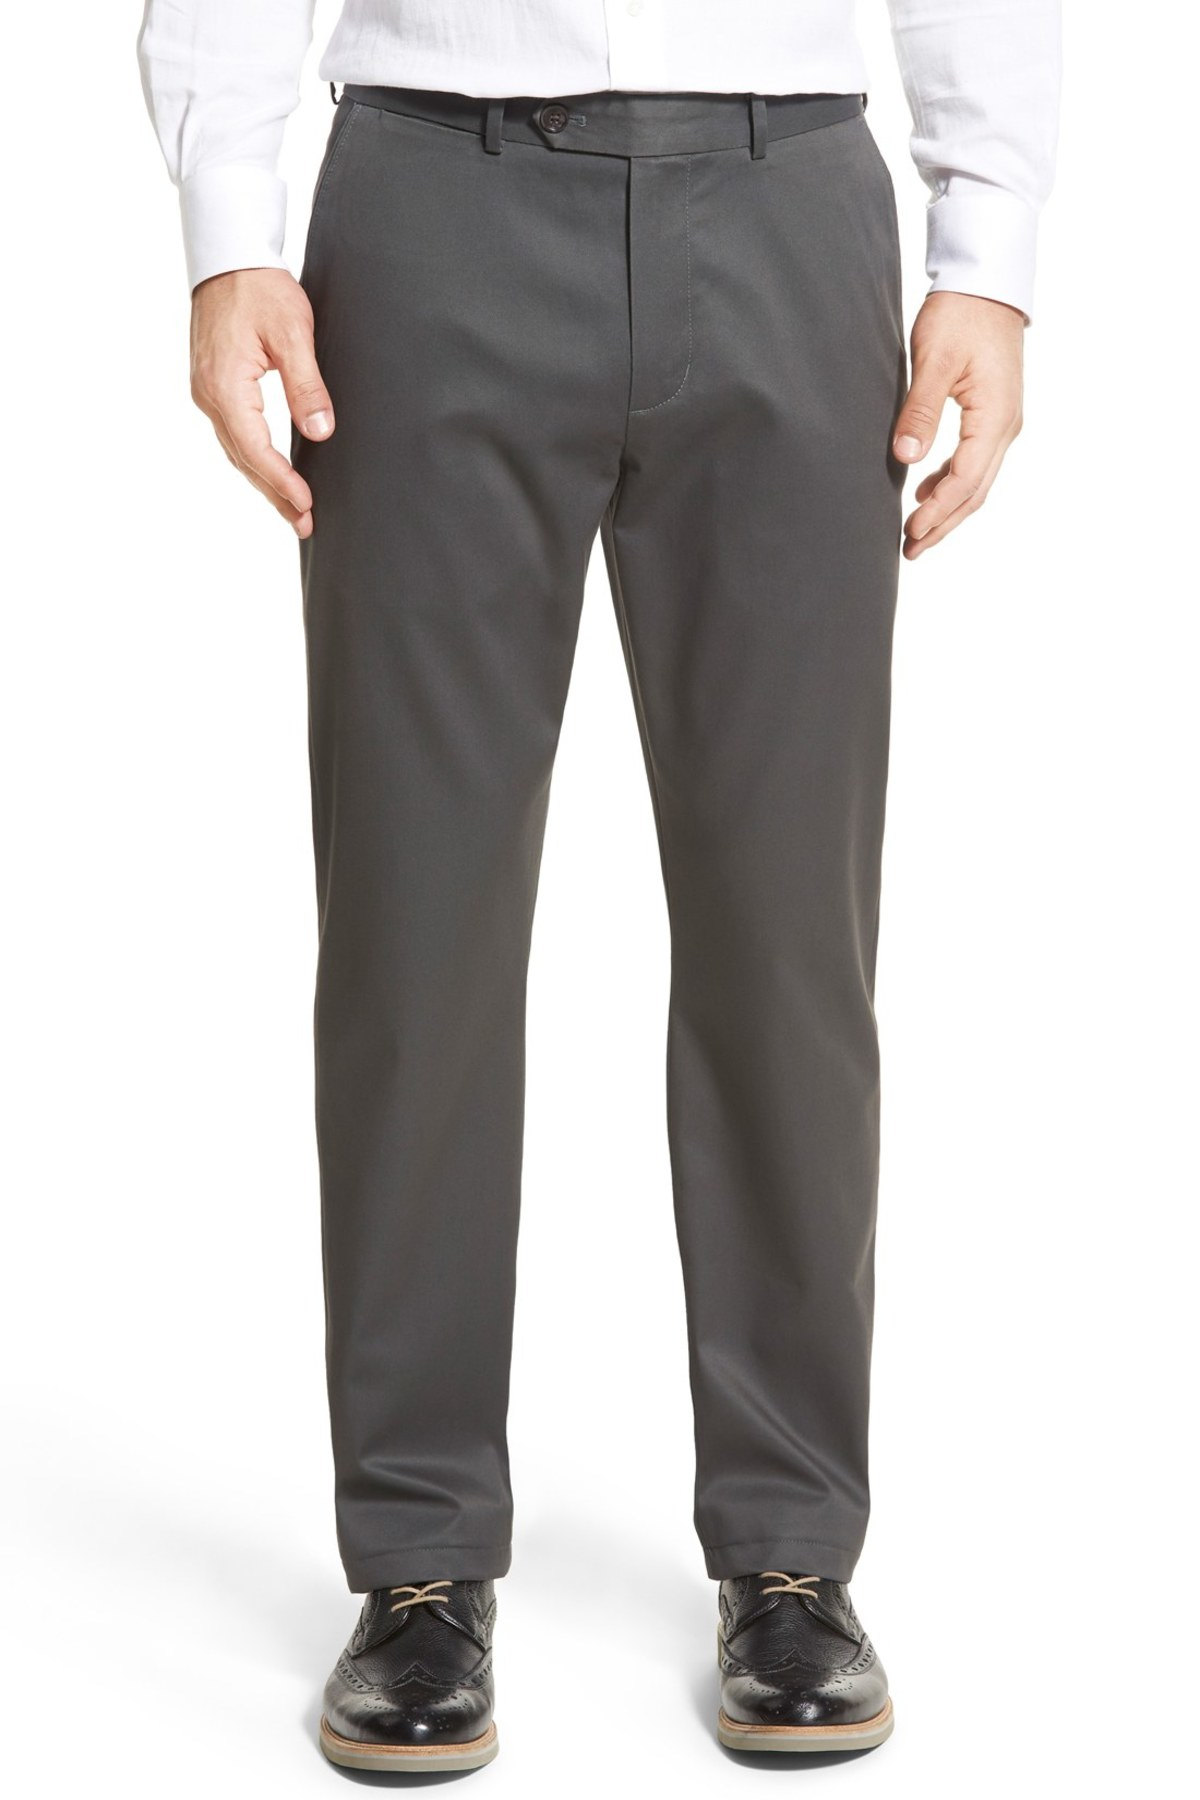 Lyst - John W. Nordstrom Non-iron Smartcare Flat Front ...